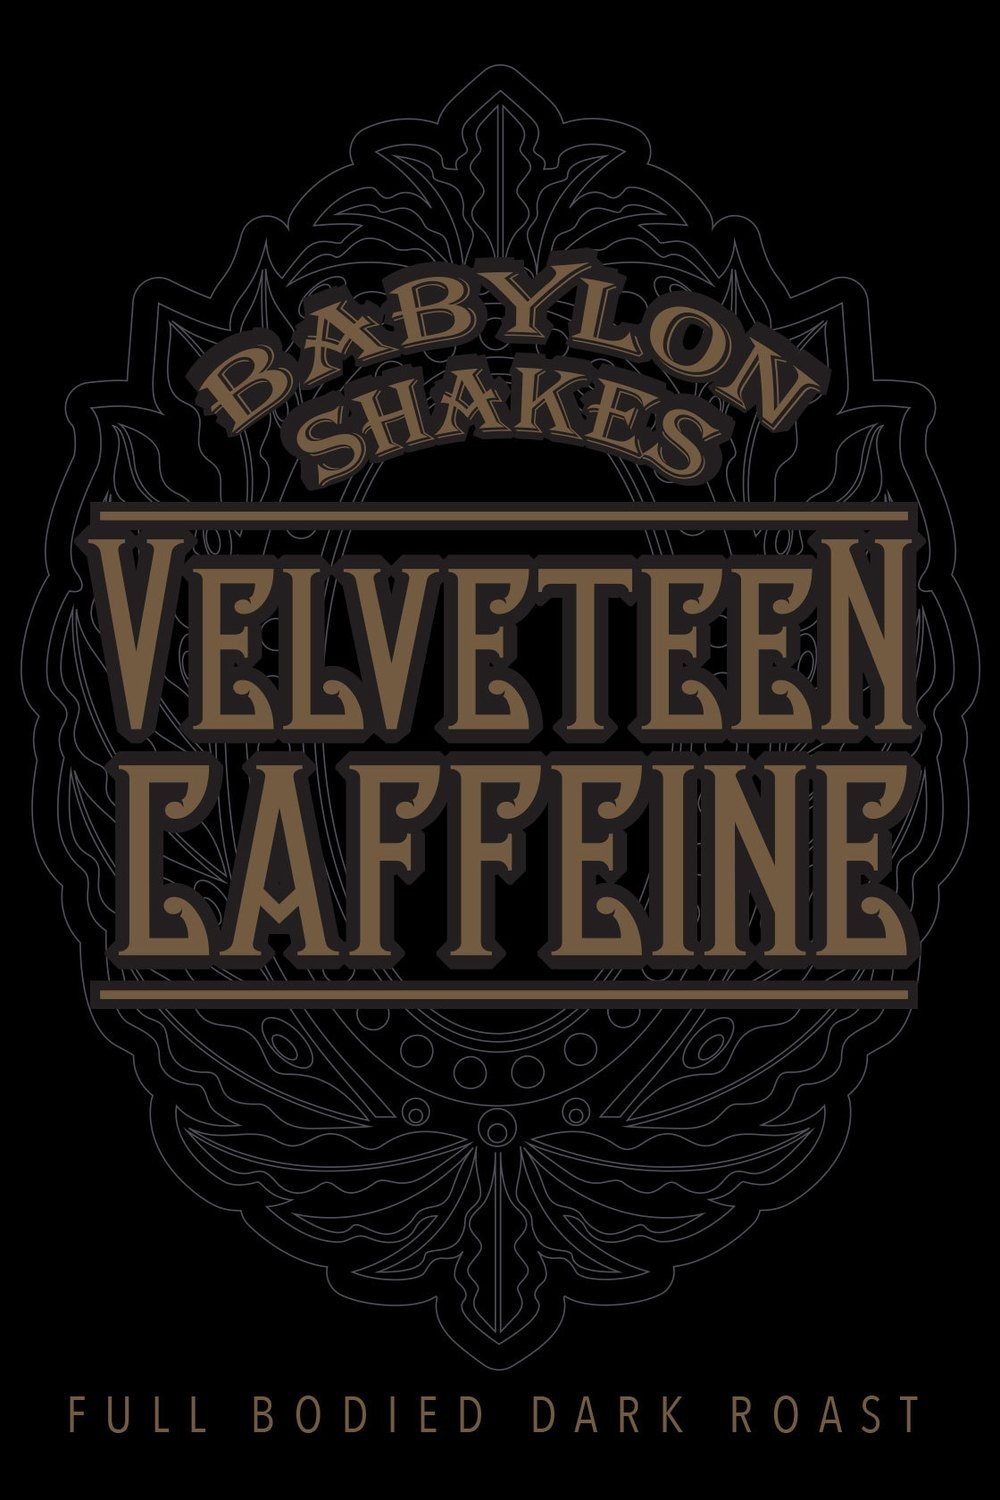 Babylon Shakes Signature Roast Coffee - 'Velveteen Blend'